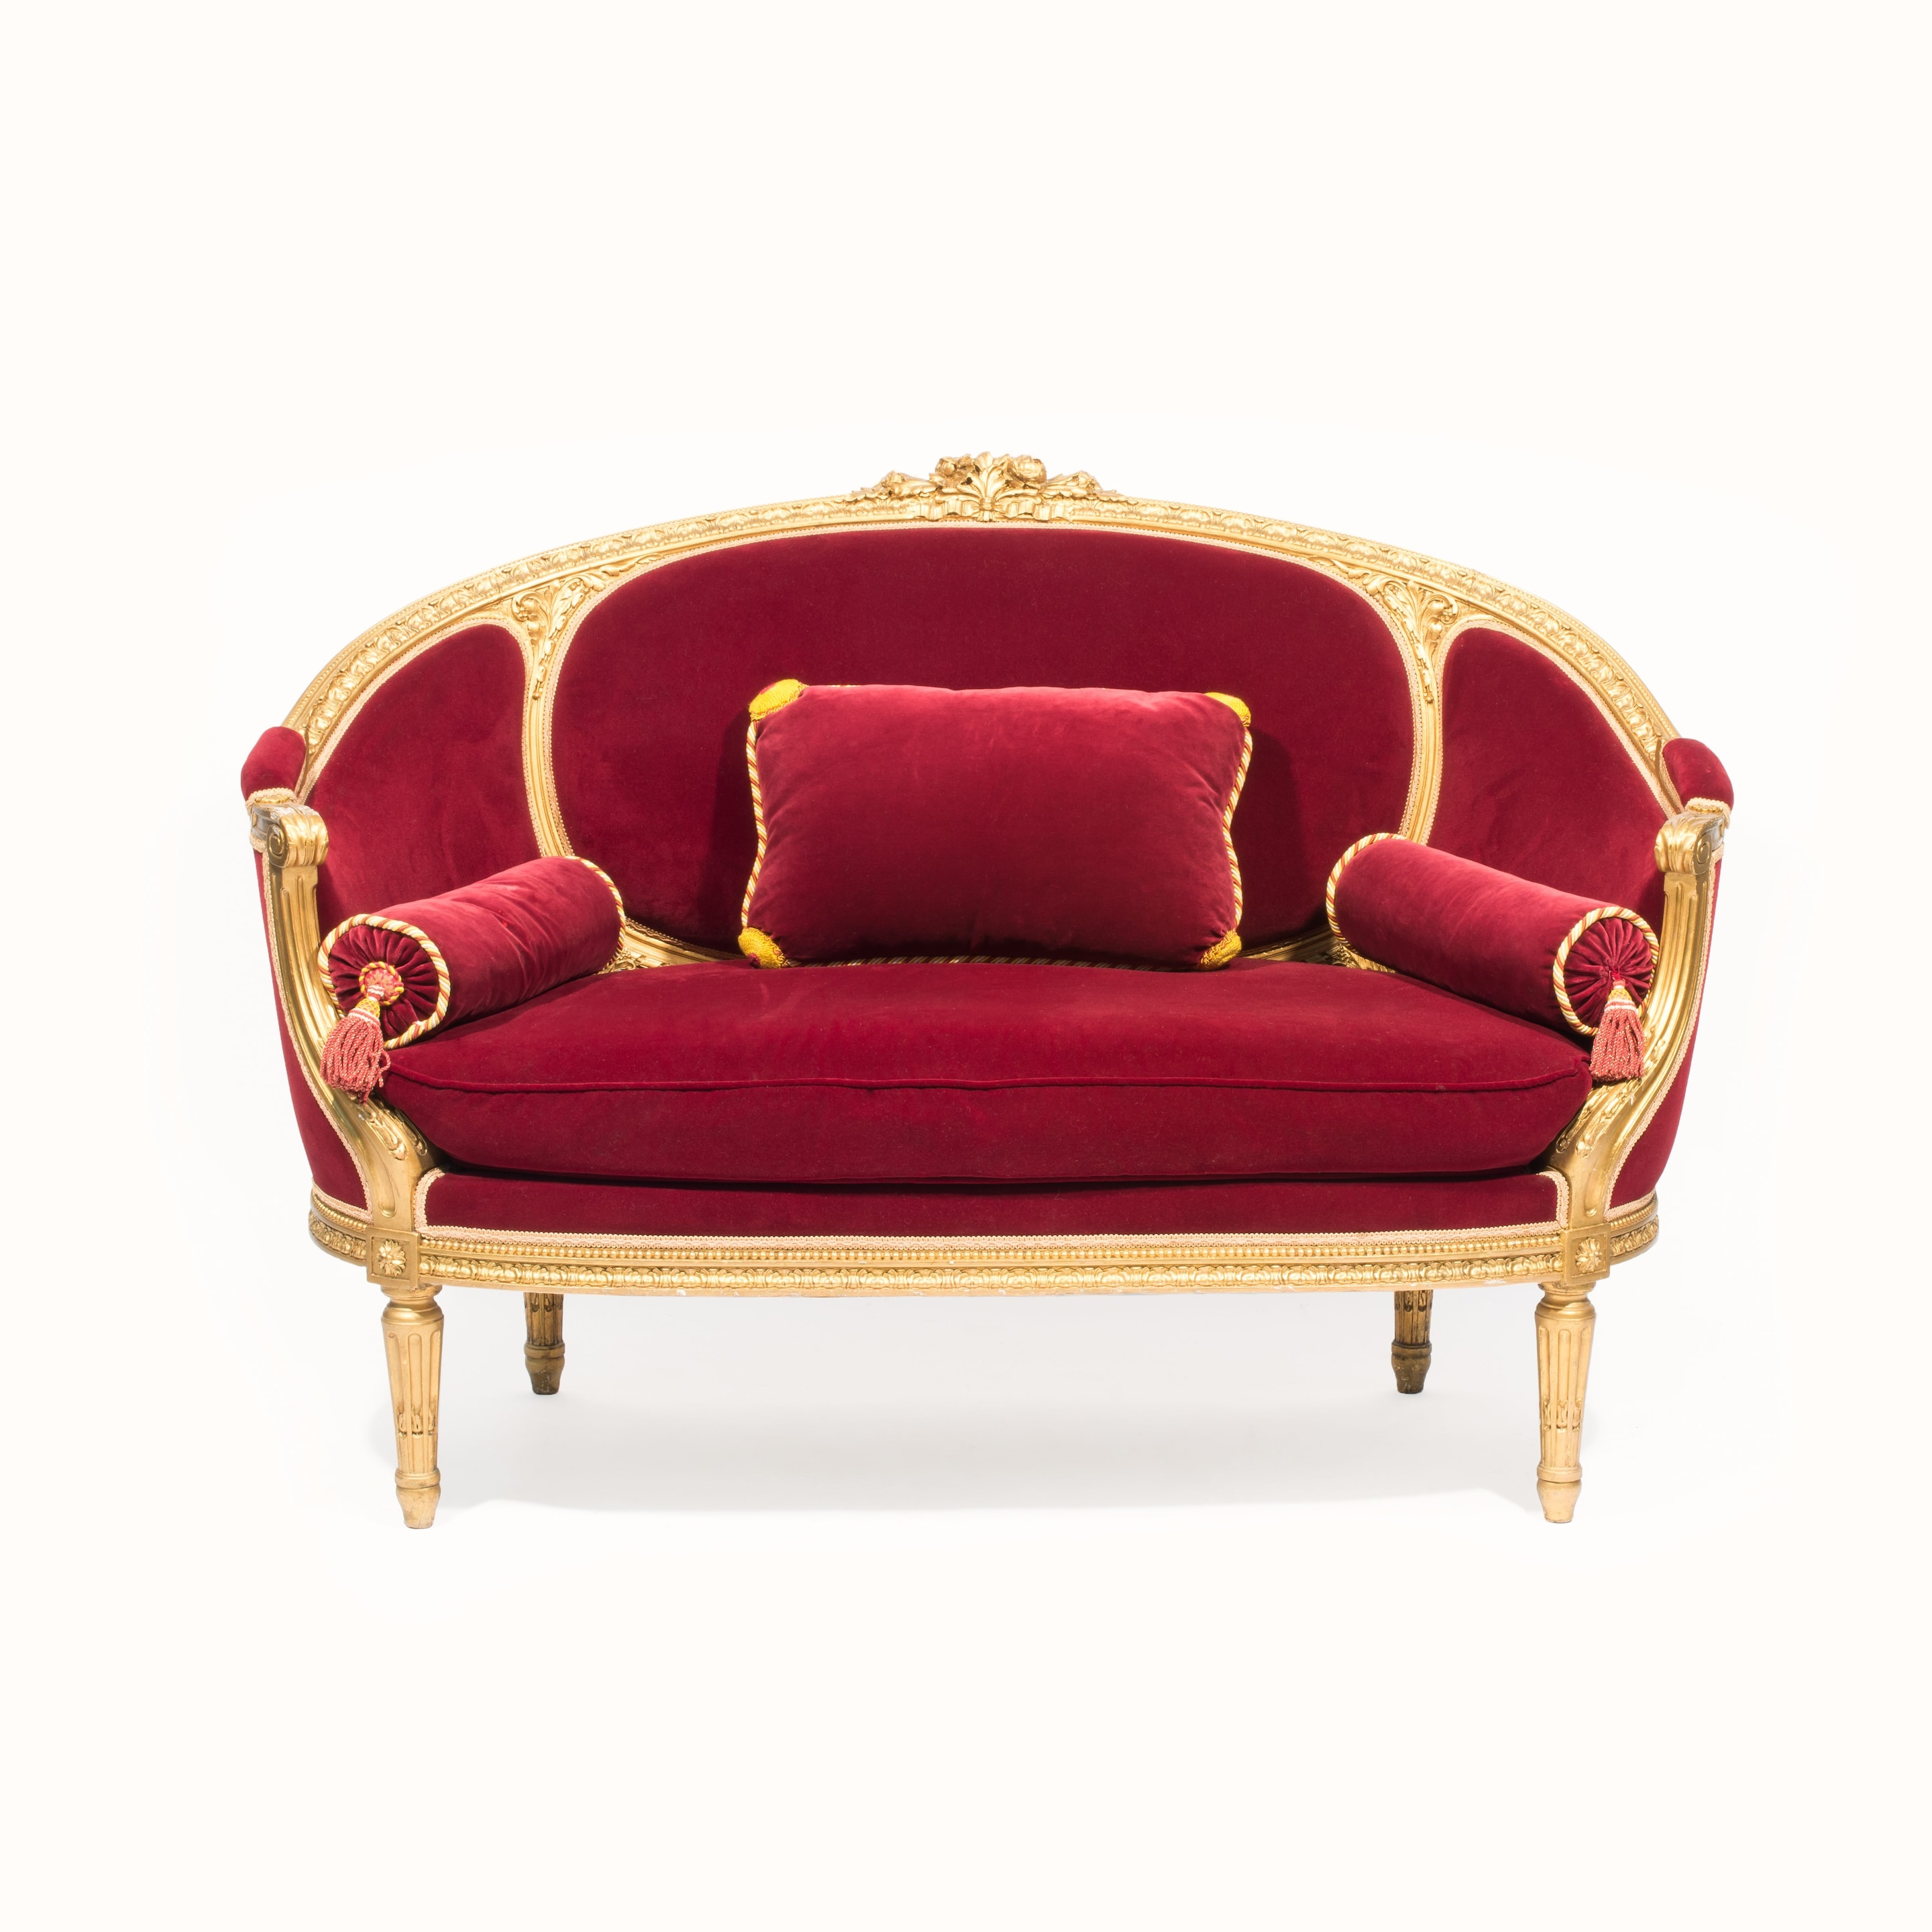 Canapé But Broadway Coco Chanel S Chairs A Duke S Dog Bed Treasures From The